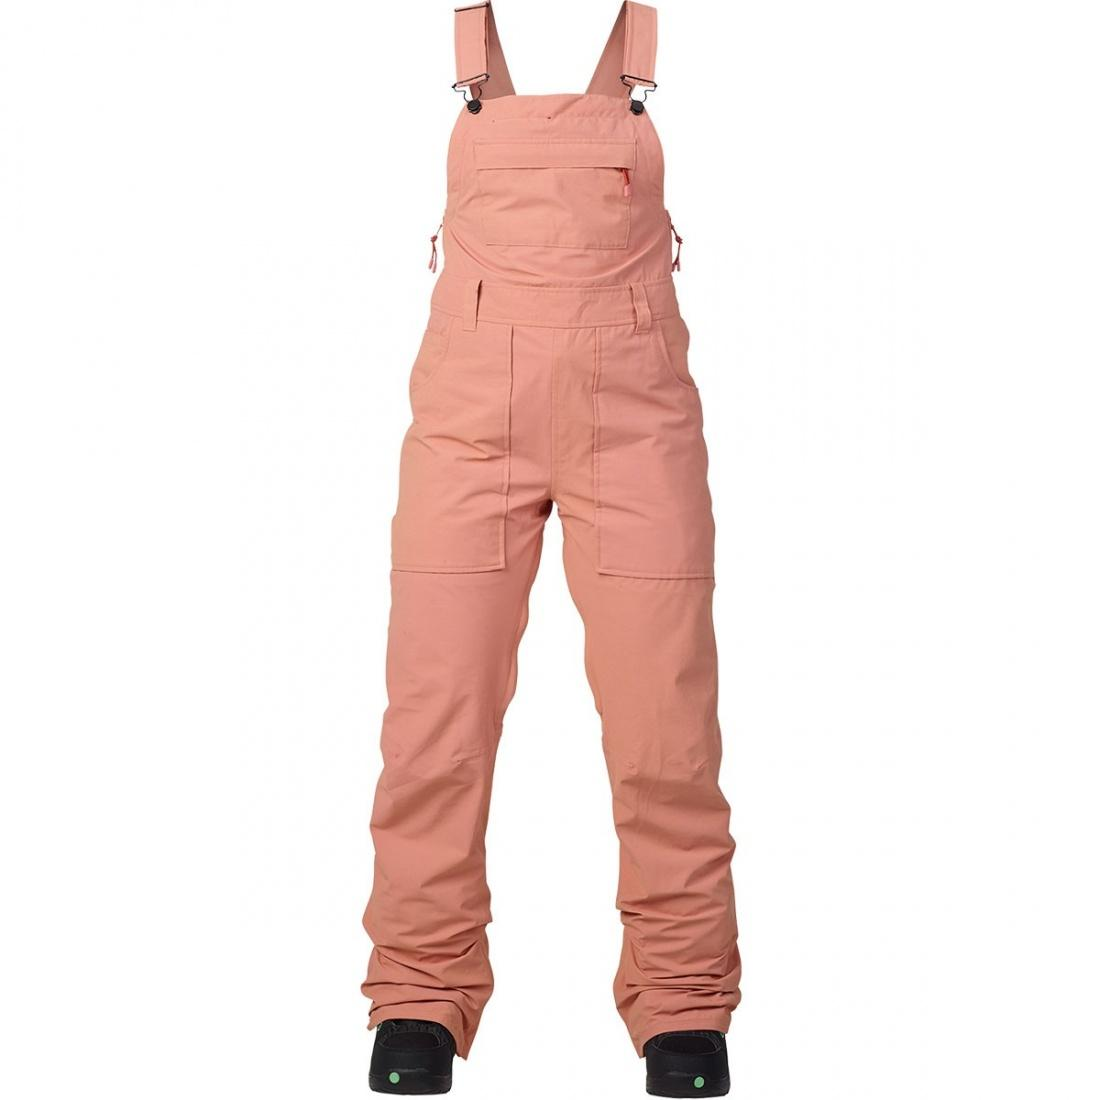 Burton Штаны для сноуборда Burton Avalon Bib DUSTY ROSE WASHED XS burton крепления для сноуборда burton genesis est l